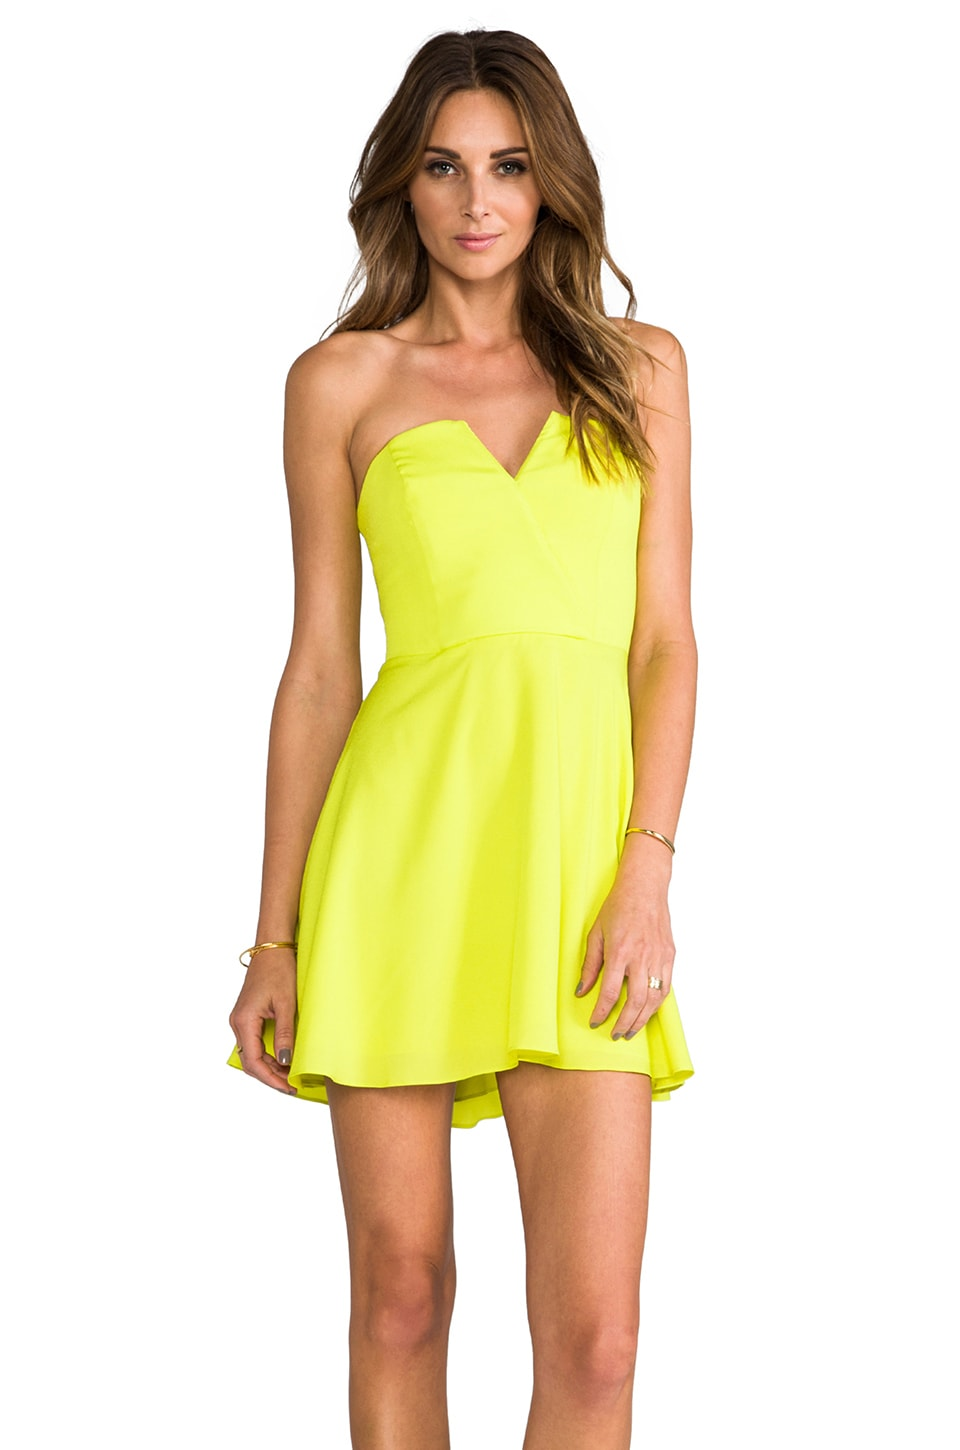 Naven Bombshell Circle Skirt Dress in Chartreuse